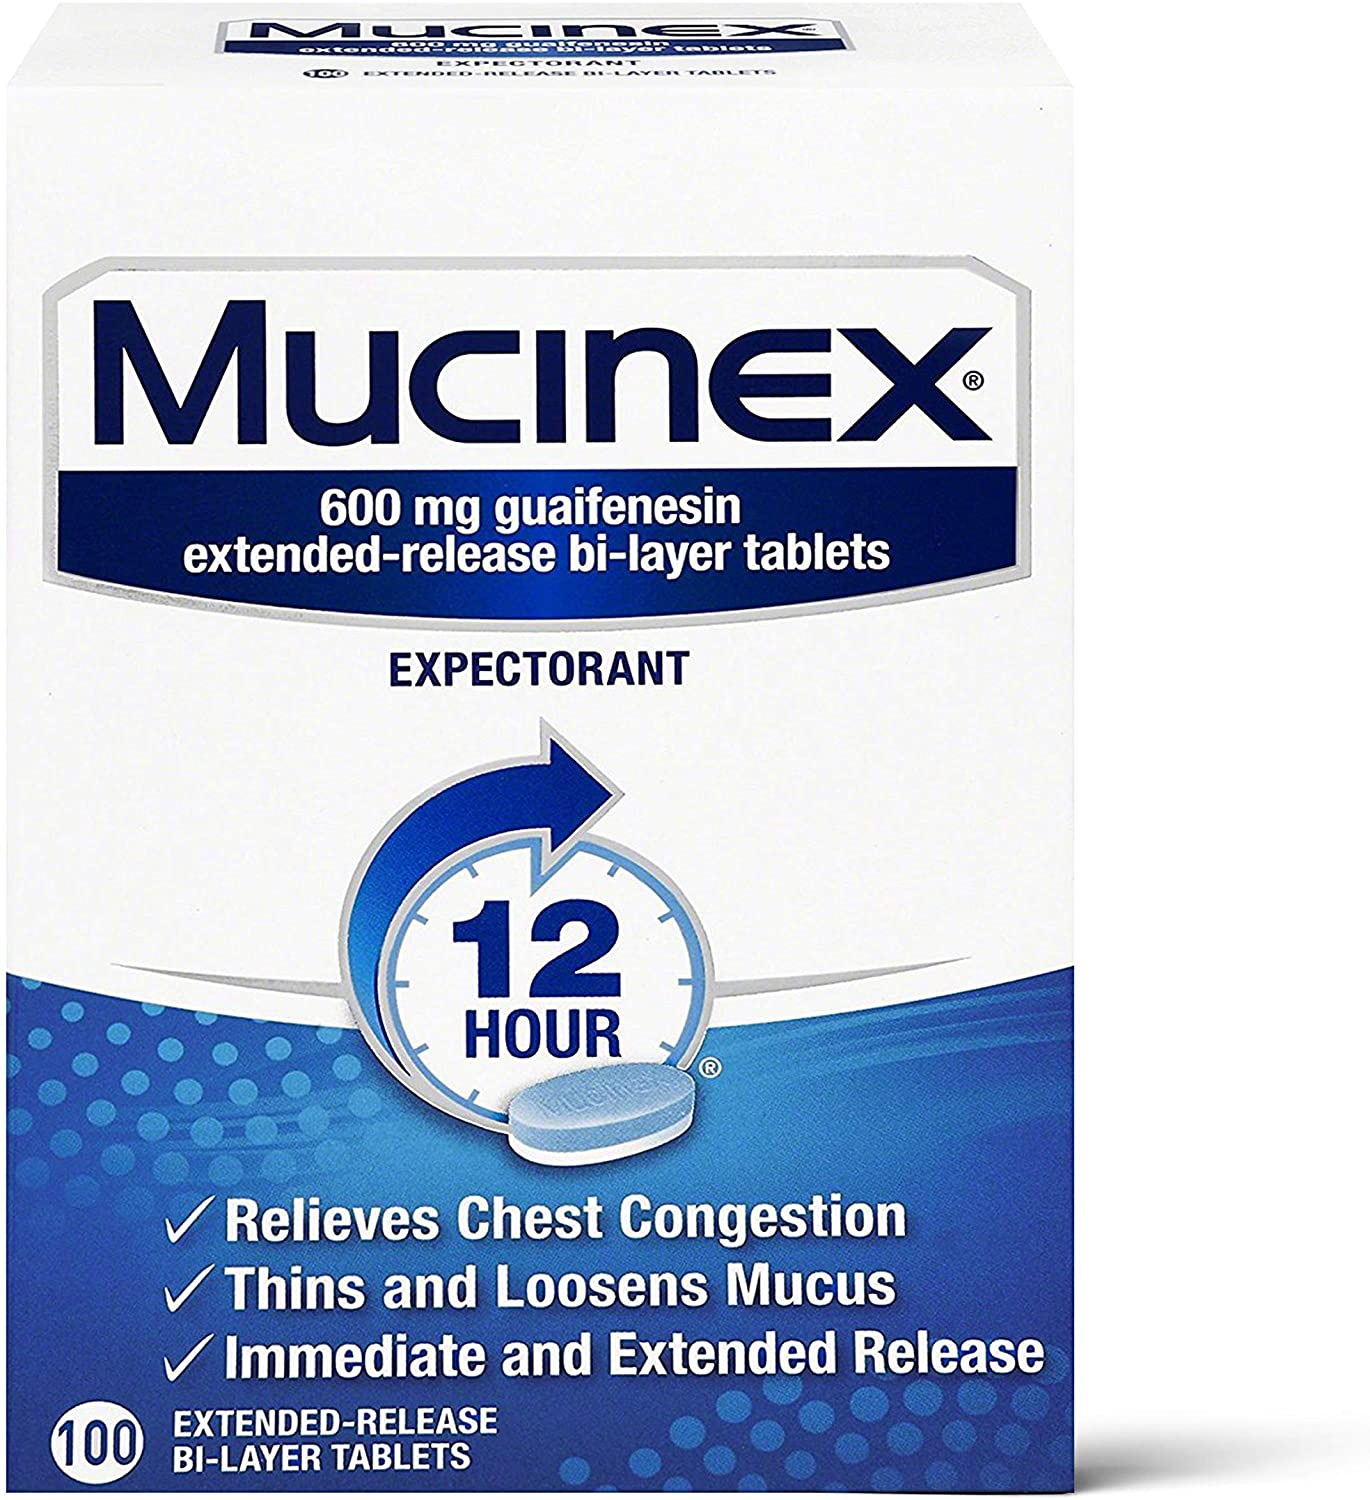 Chest Congestion, Mucinex 12 Hour Extended Release Tablets, 100ct, 600 mg Guaifenesin Relieves Chest Congestion Caused by Excess Mucus, #1 Doctor Recommended OTC expectorant